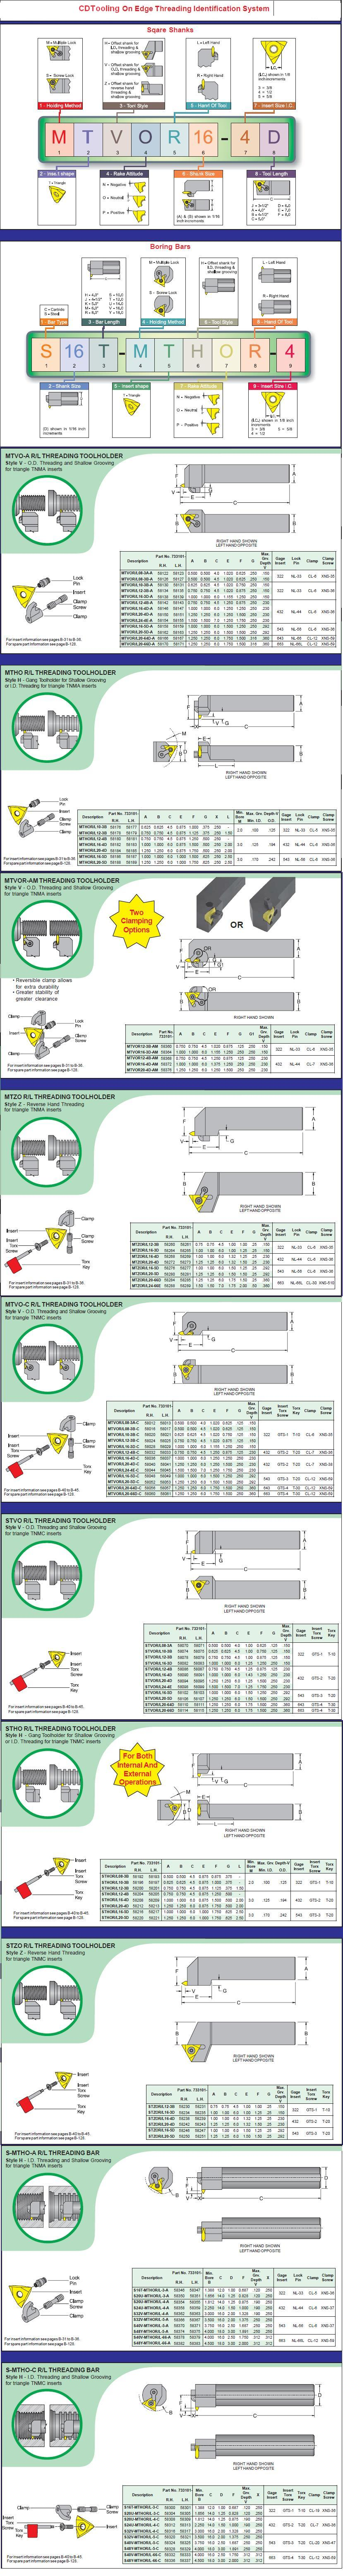 On Edge Carbide Threading, Grooving Inserts Tool Holders & Boring Bars